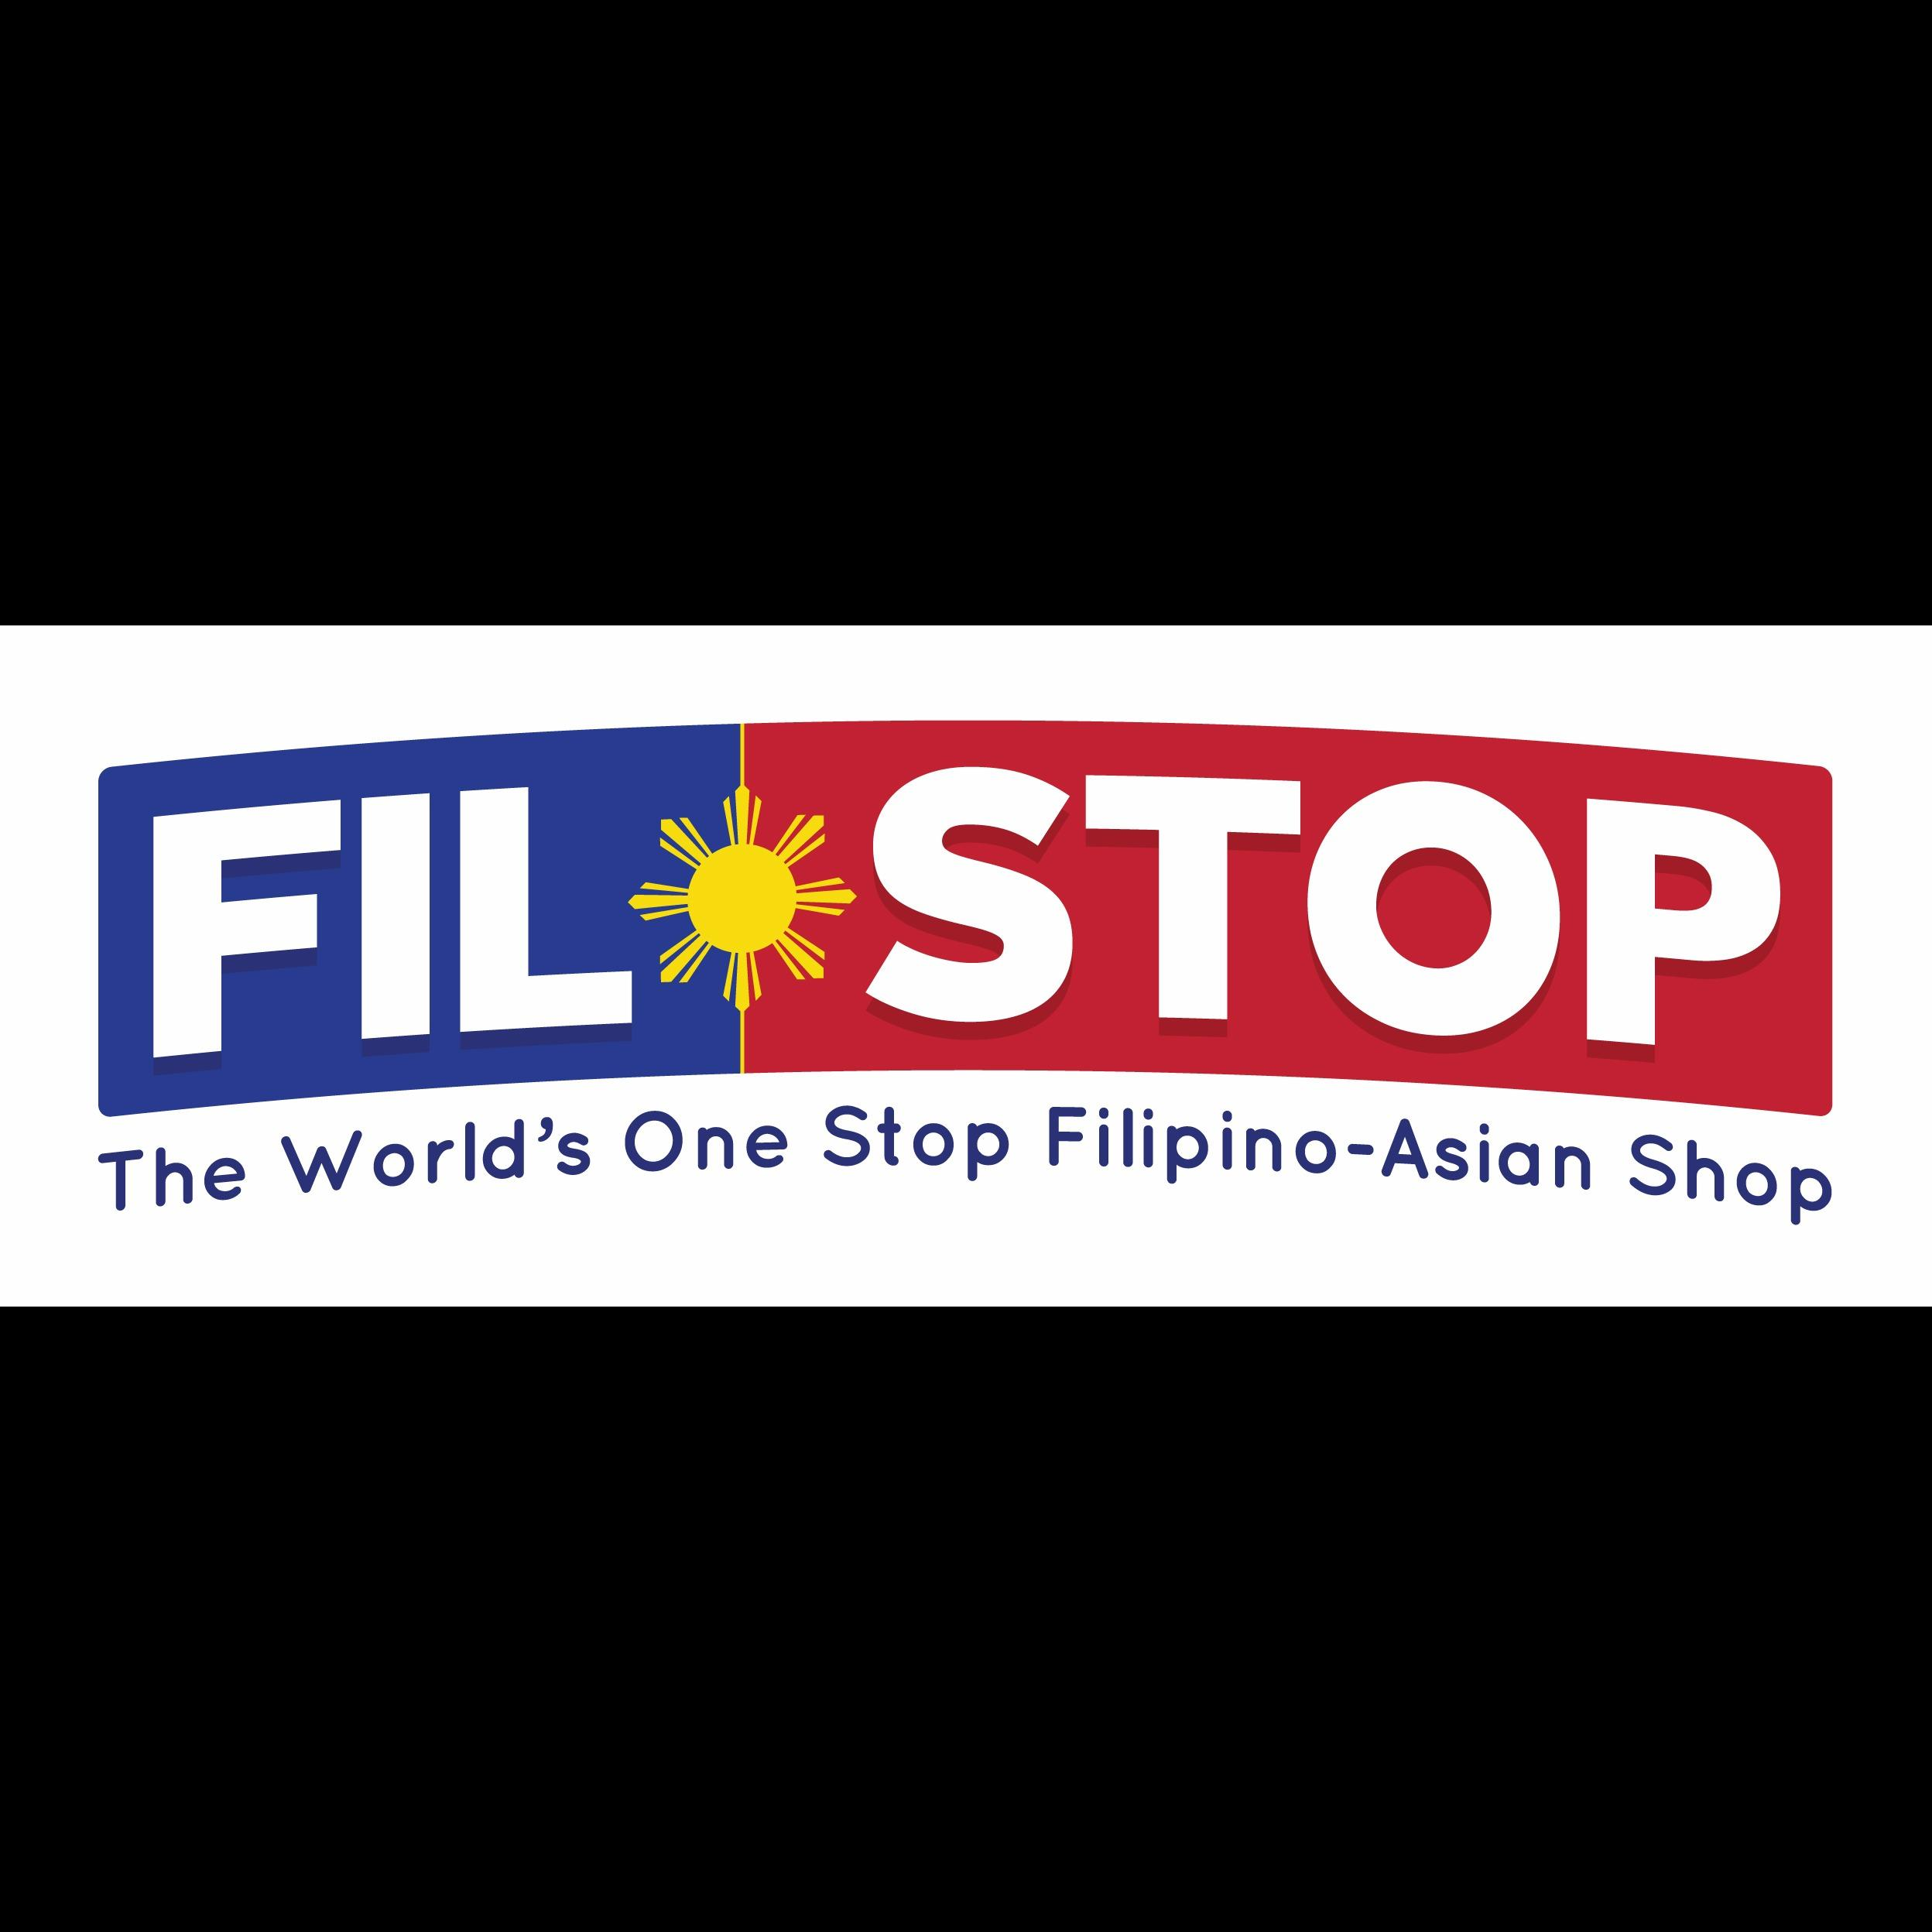 Filstop coupons near me in jersey city 8coupons for Fish stocking near me